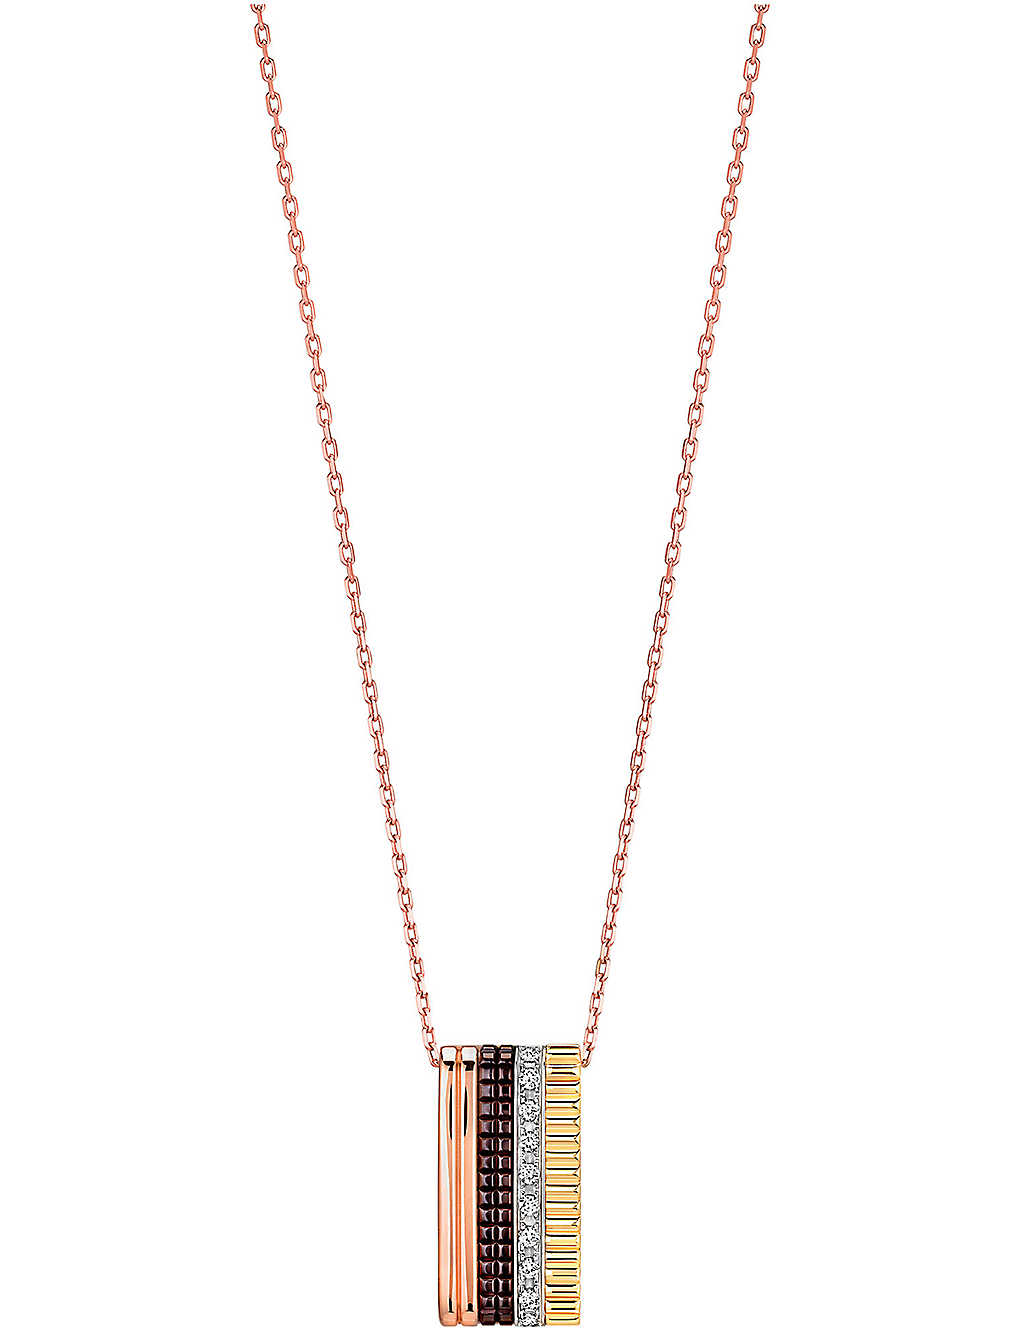 BOUCHERON: Quatre Classique 18ct pink-gold, yellow-gold white-gold and diamond pendant necklace